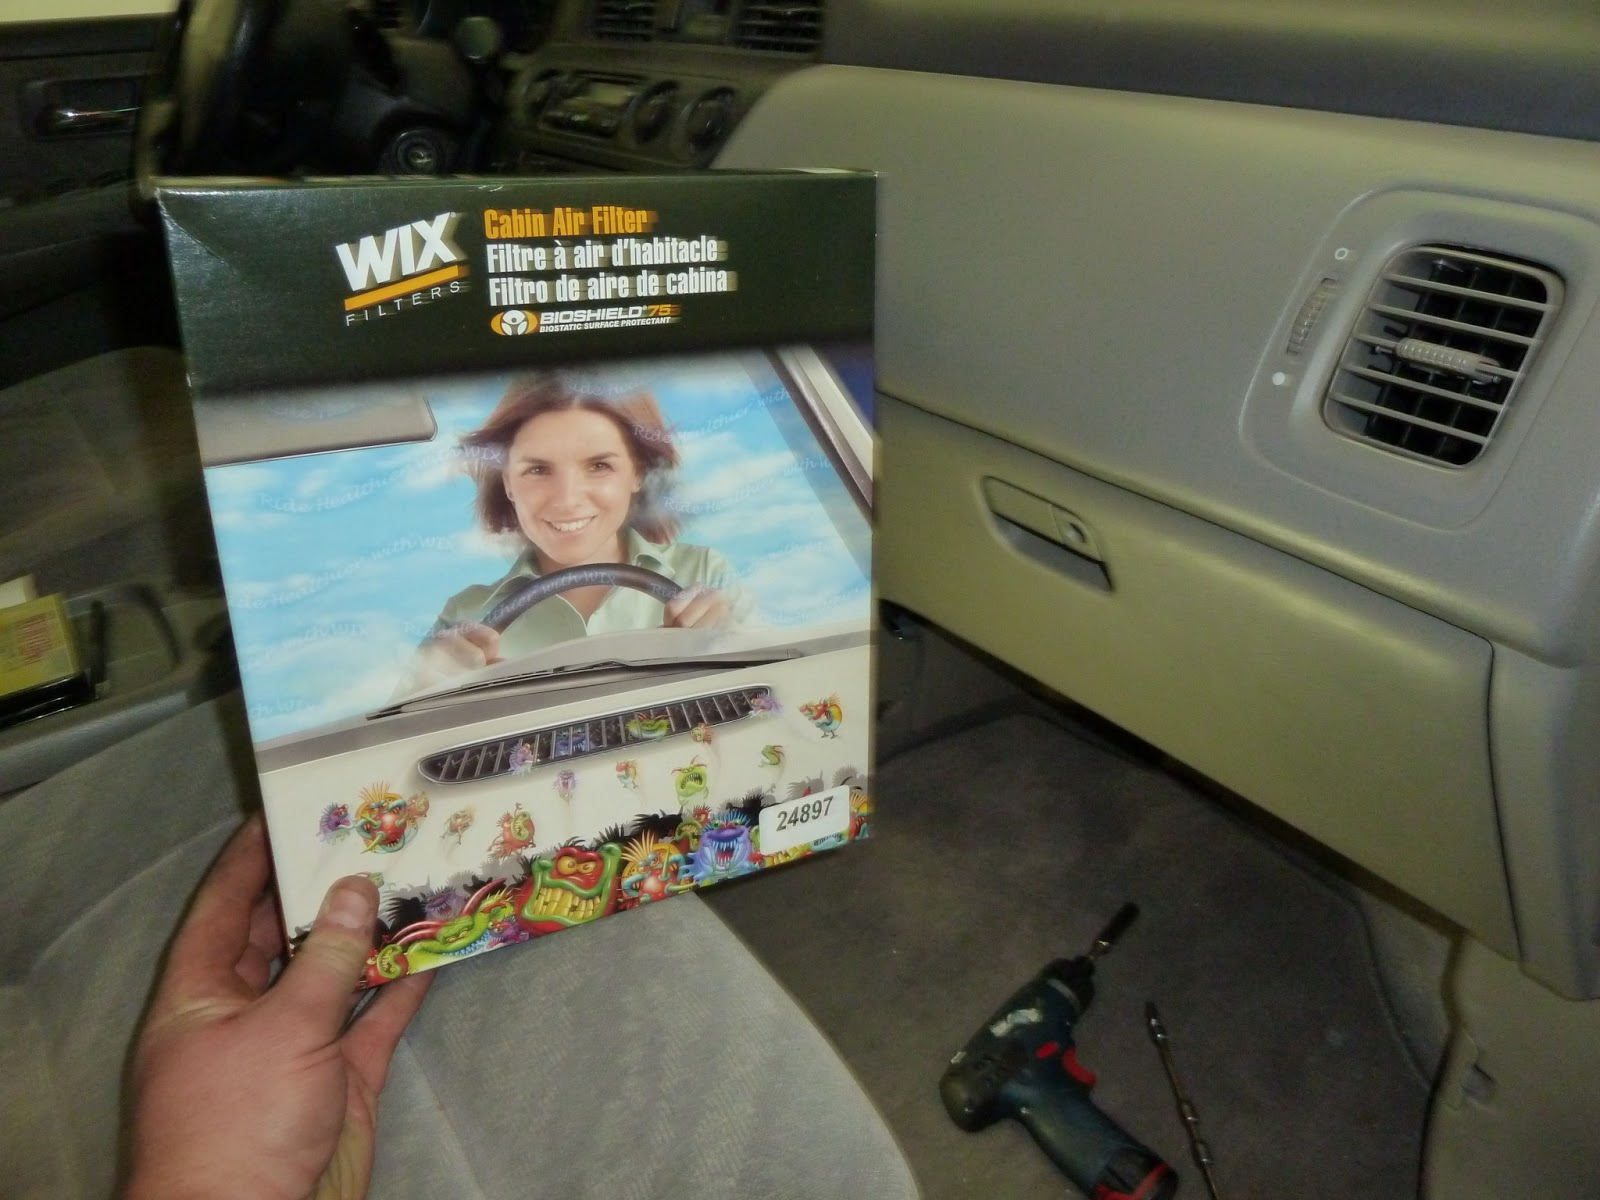 They Have Great Prices And Good Brand Name Stuff I Like Wix Filters A Lot So Didn T Hesitate To It